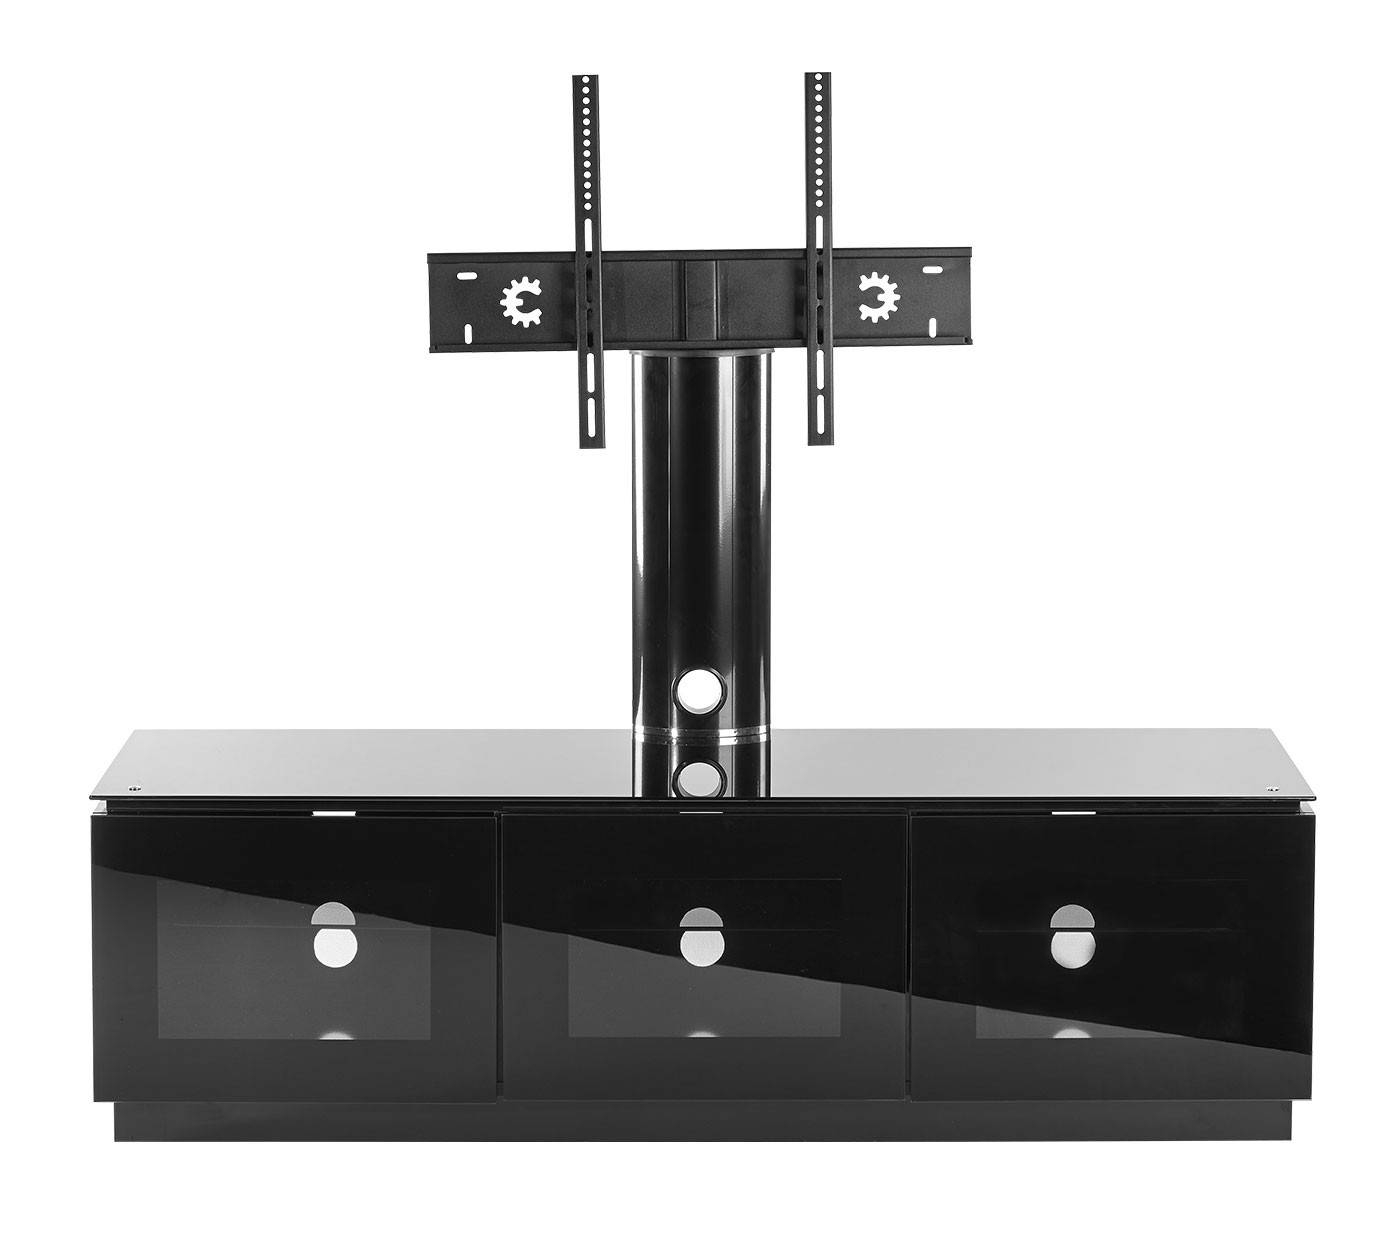 Black Tv Cabinet With Mount For Up To 65 Inch Tv | Mmt D1500 Xarm With Regard To Black Gloss Tv Cabinet (View 13 of 15)